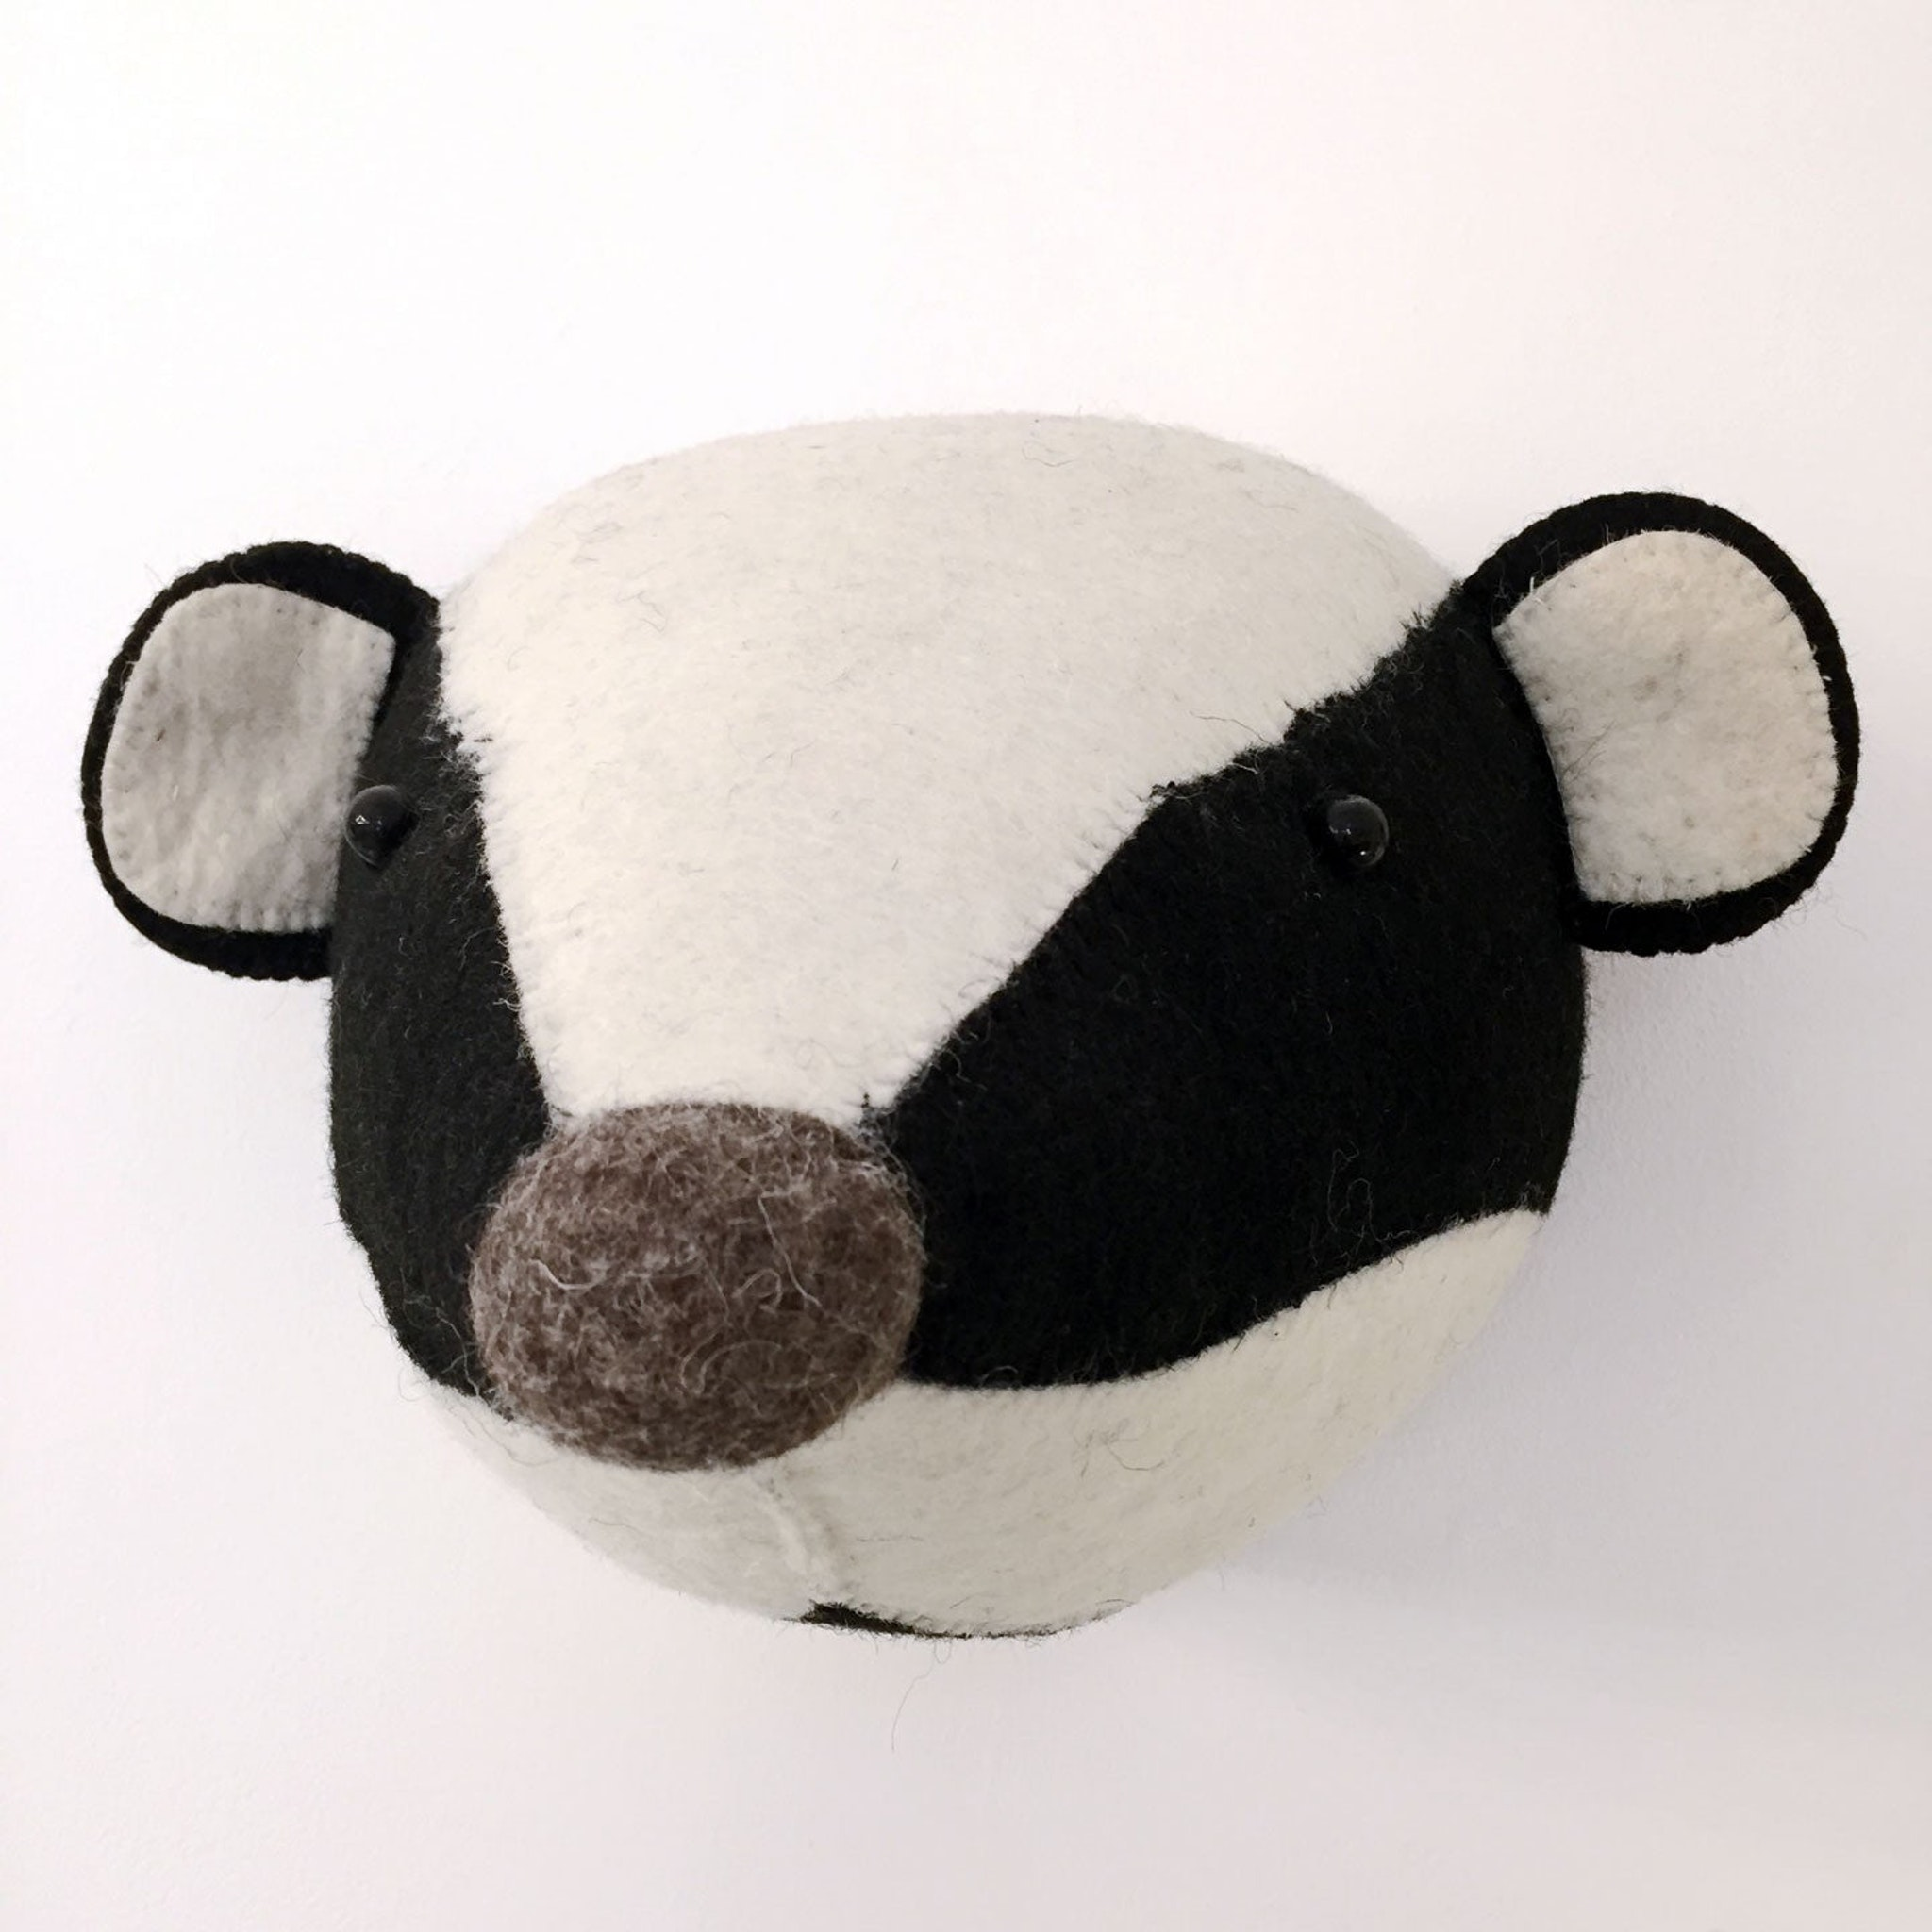 Badger Head by Fiona Walker